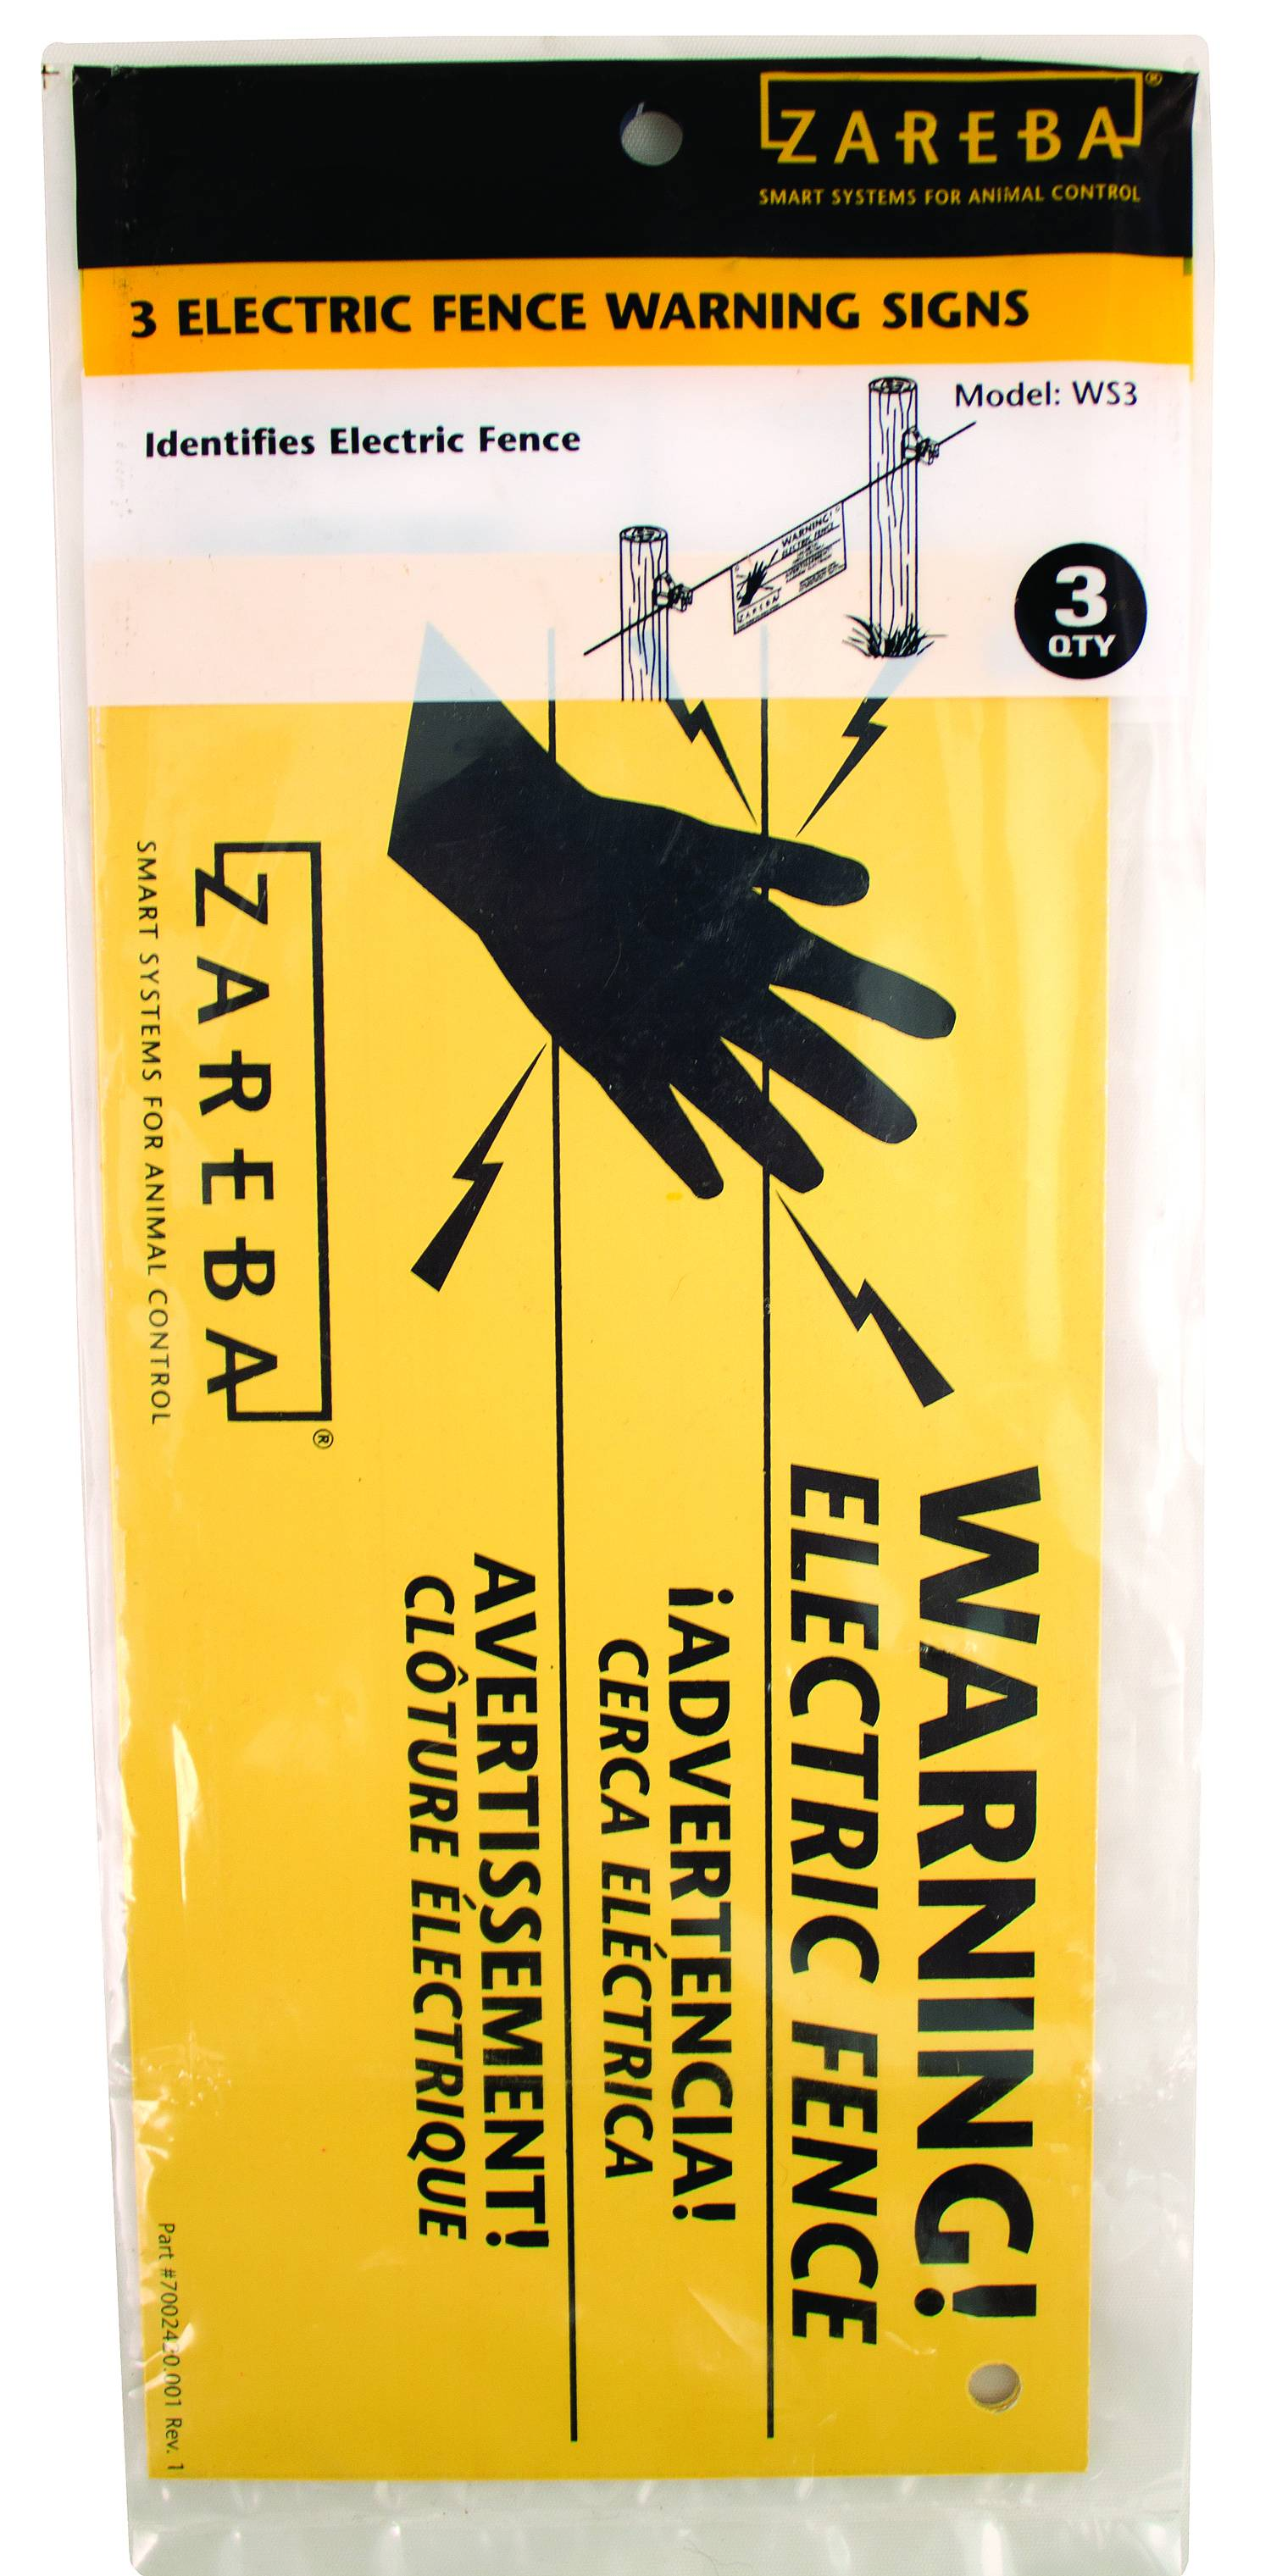 Zareba Electric Fence Warning Signs